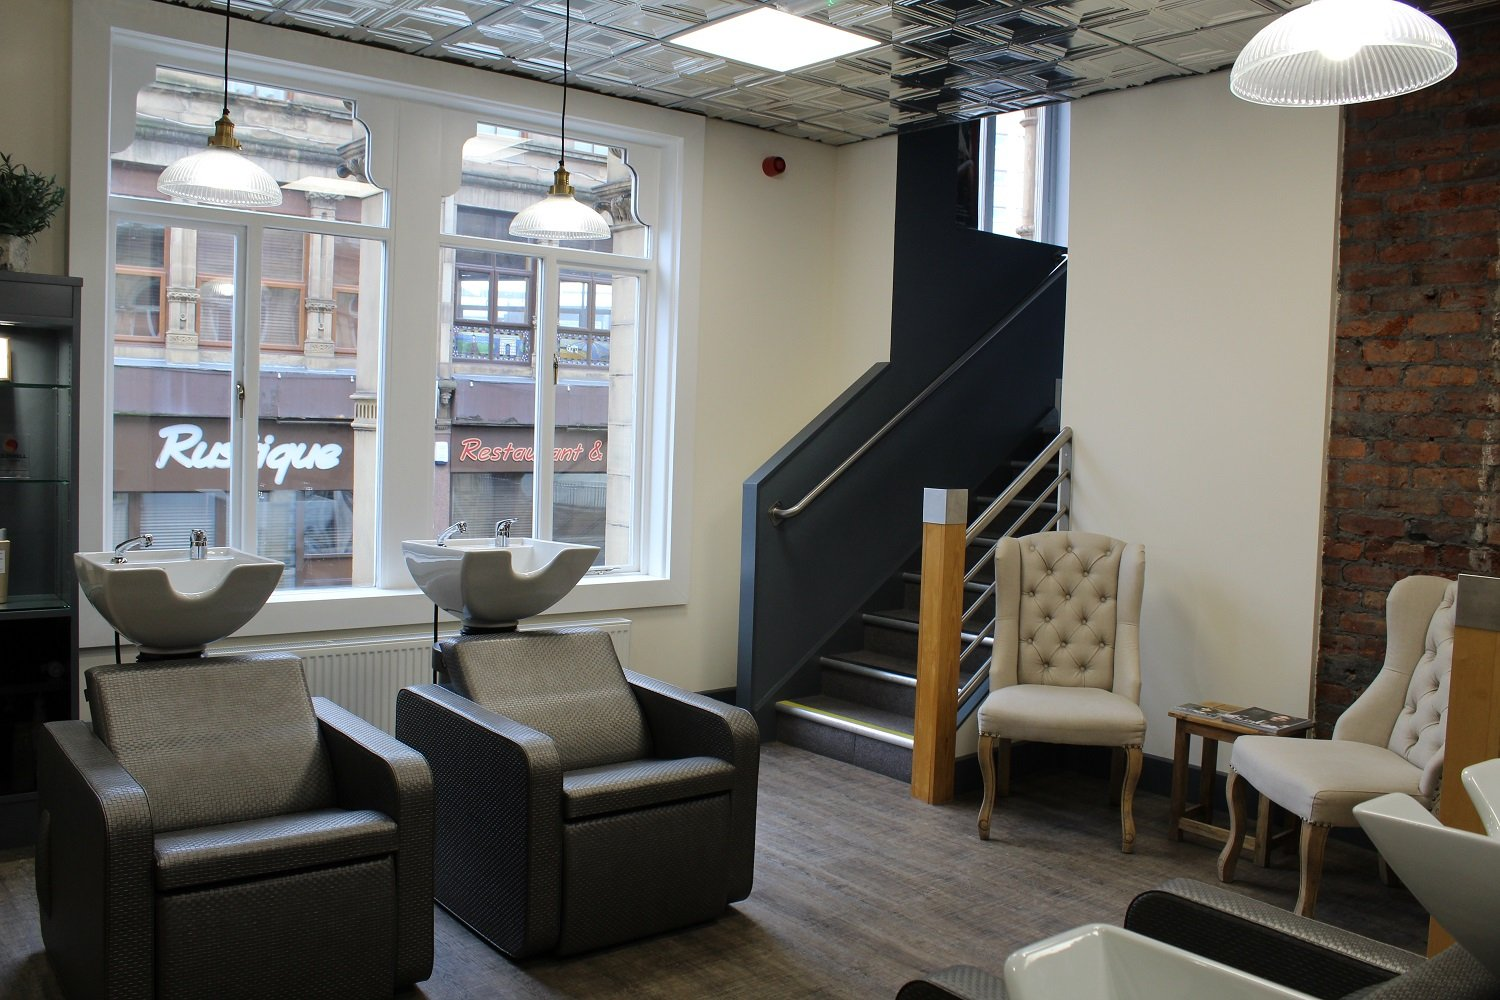 The best salon reviews at Anthony James Hairdressing Salon in Halifax